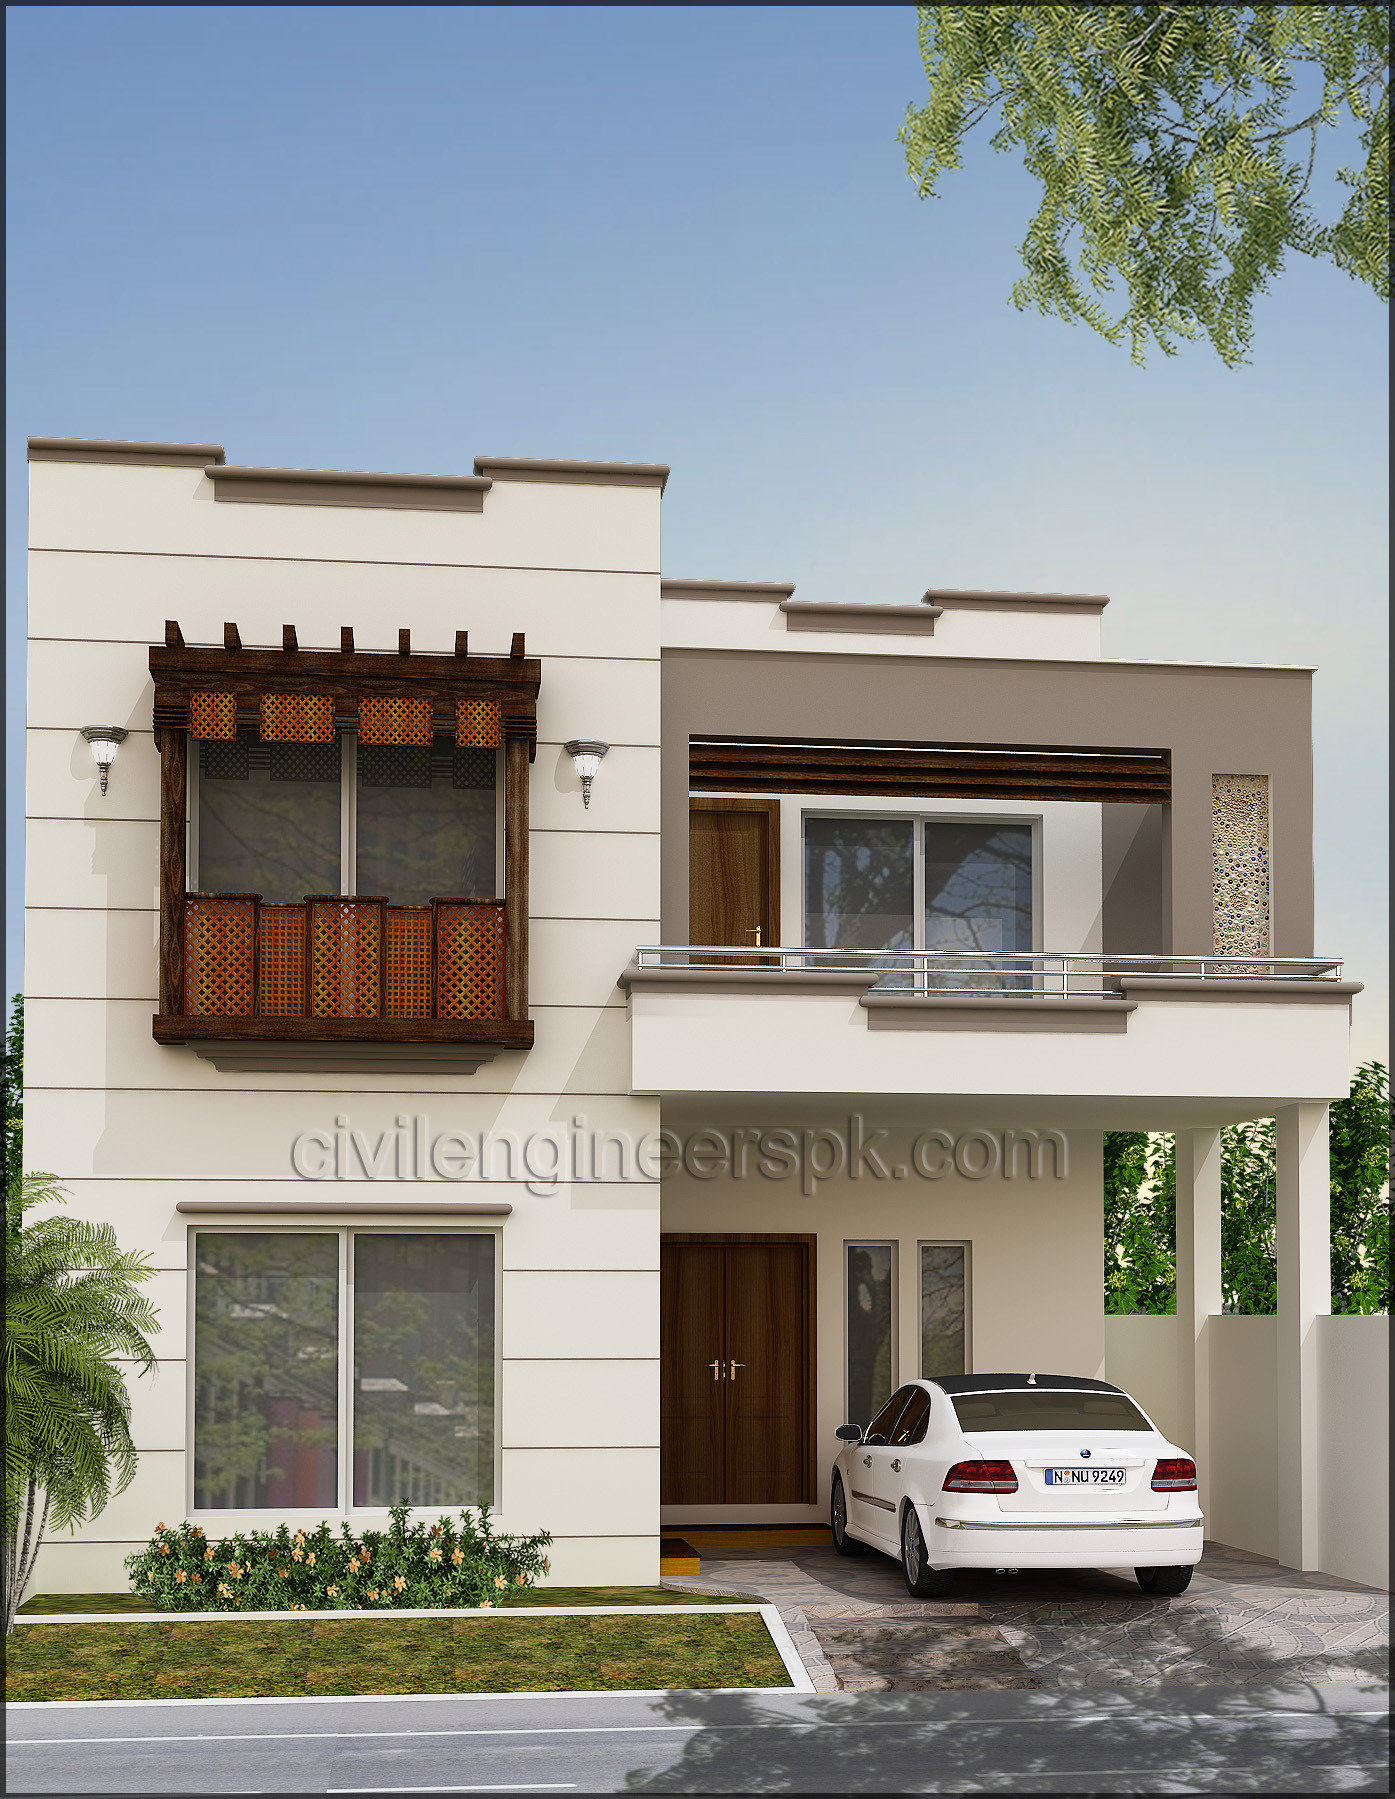 UploadsBuy 7 33 Marla House For Sale in Bahria Town Lahore Lahore 3pjpesngb5mfm2b4zkkhkyia47 7 Marla 01